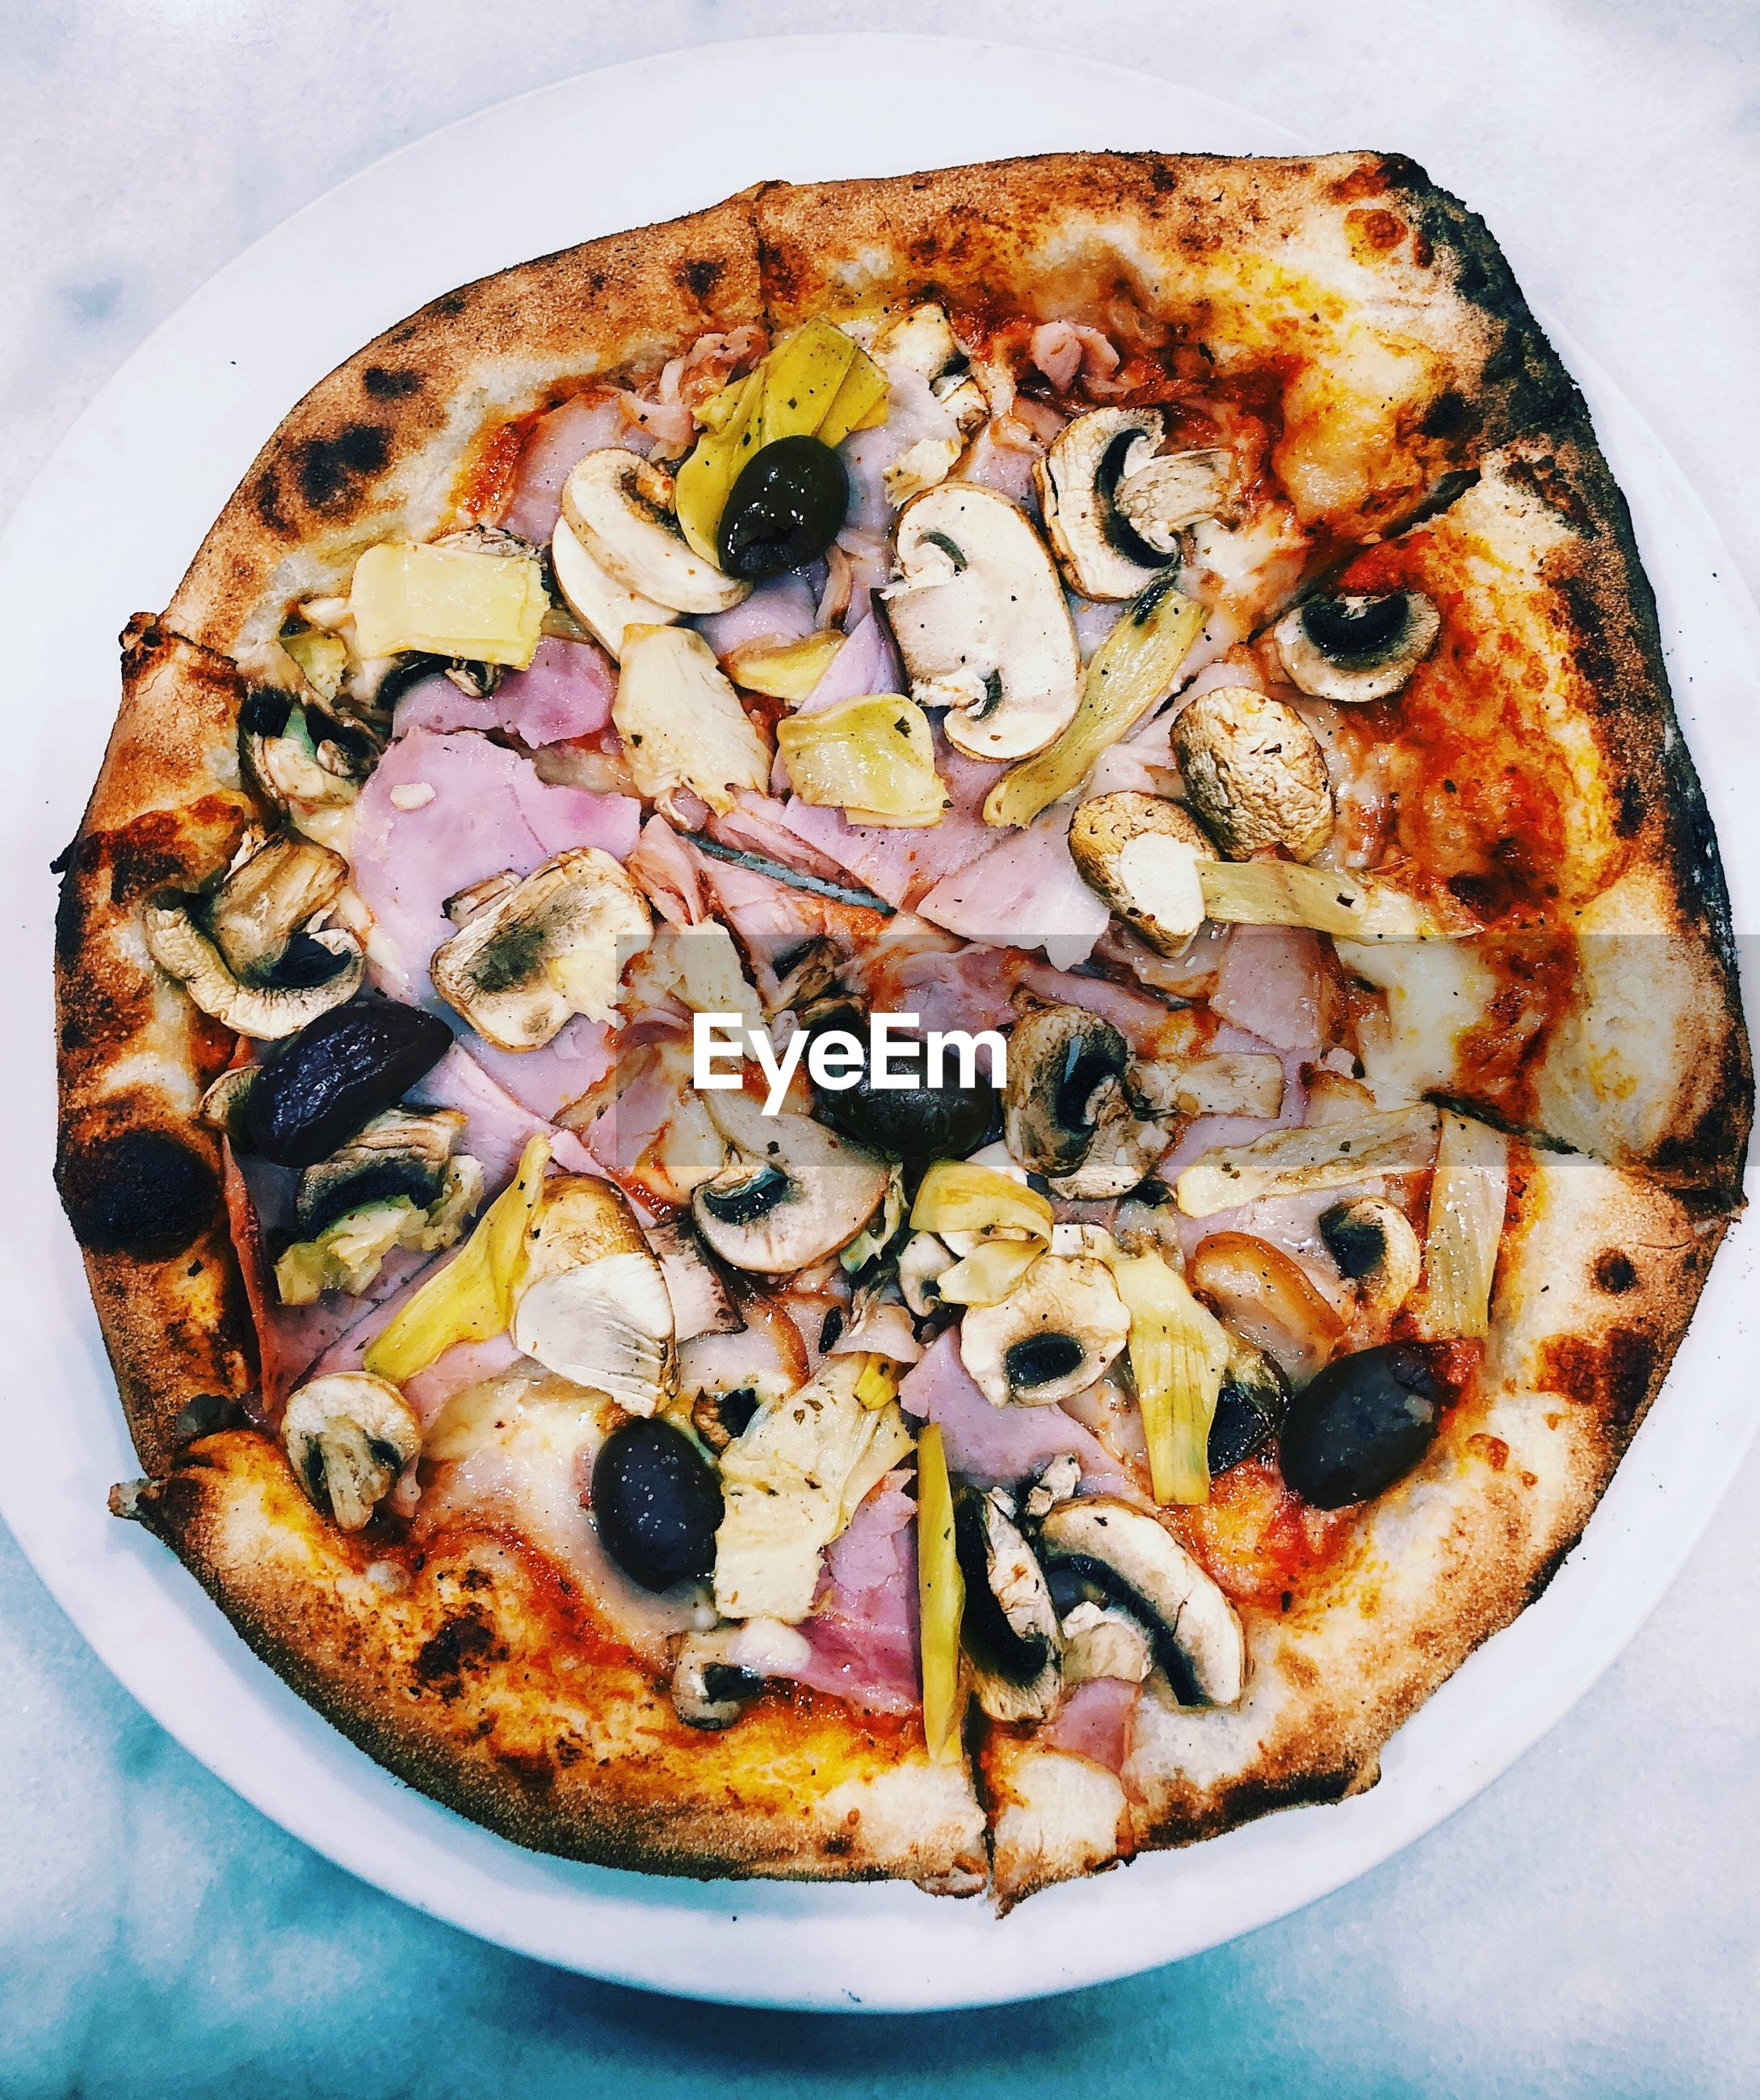 Directly above shot of pizza in plate on wooden table